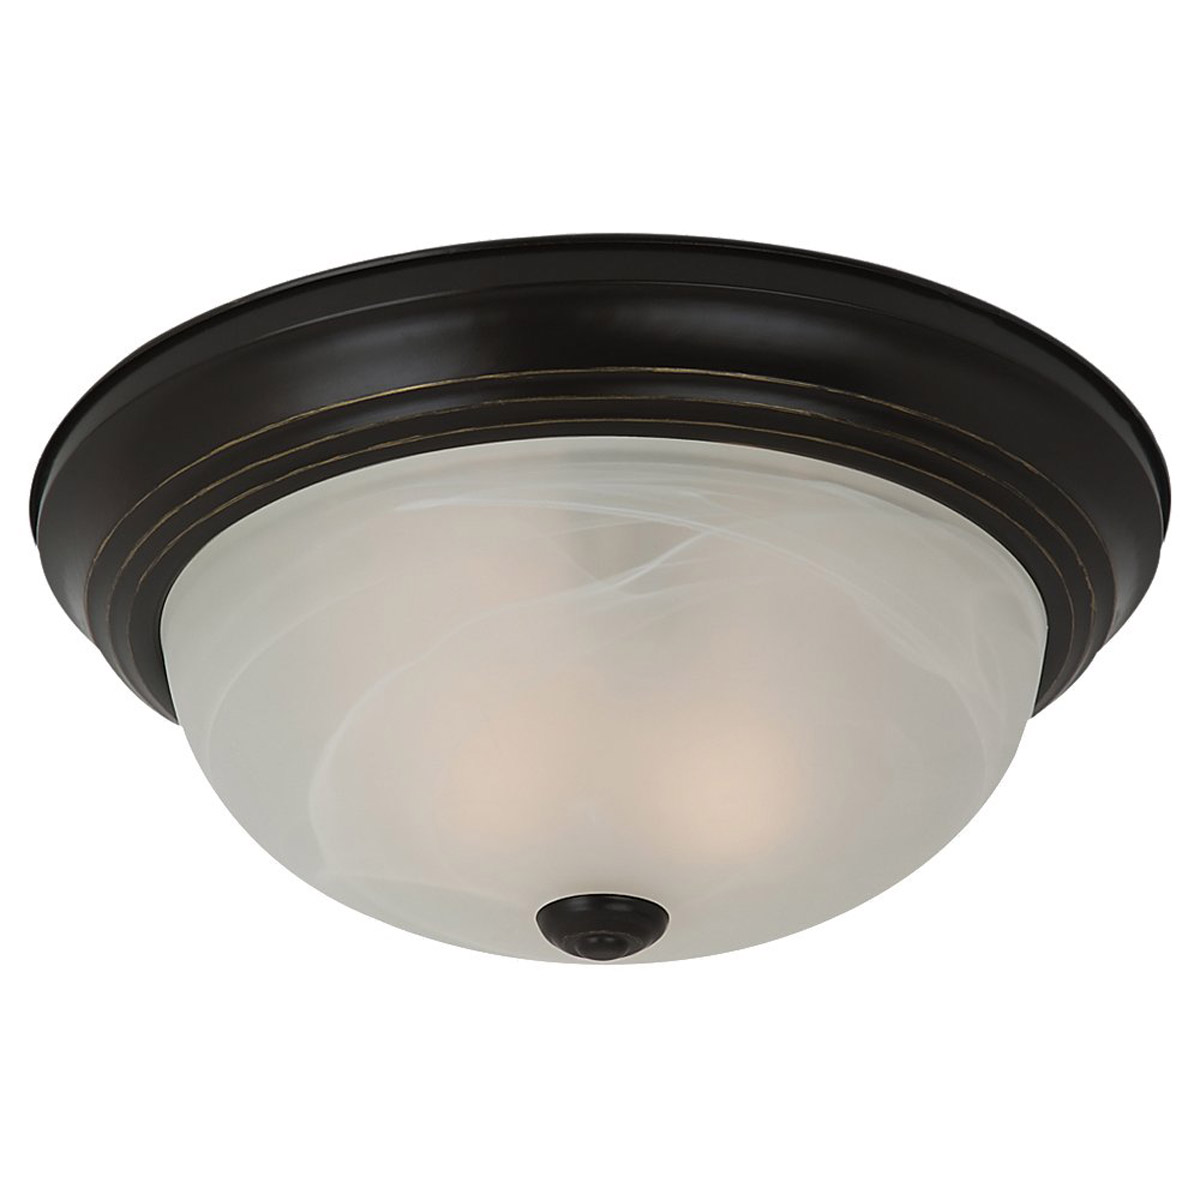 Sea Gull 75943BLE-782 Windgate 3 Light 15 inch Heirloom Bronze Flush Mount Ceiling Light in Fluorescent photo